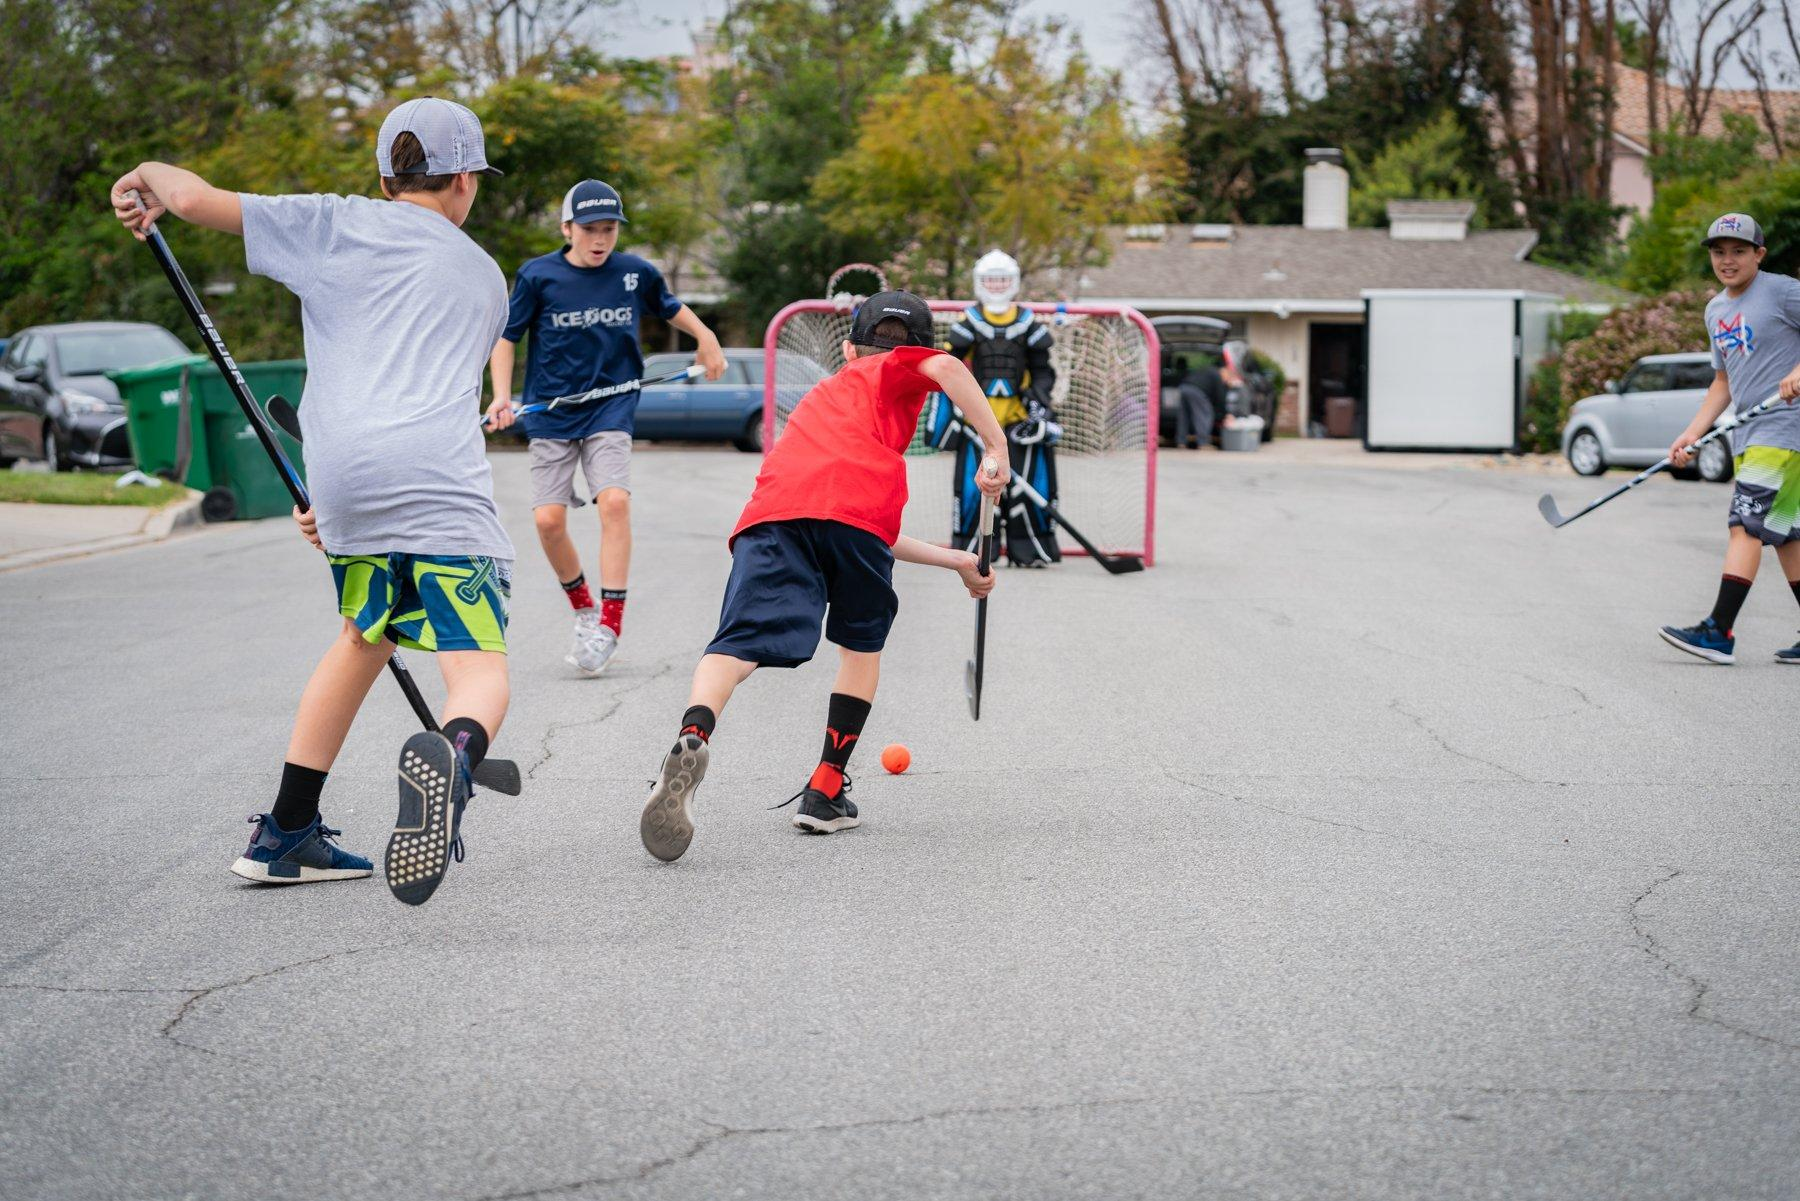 Bauer street hockey